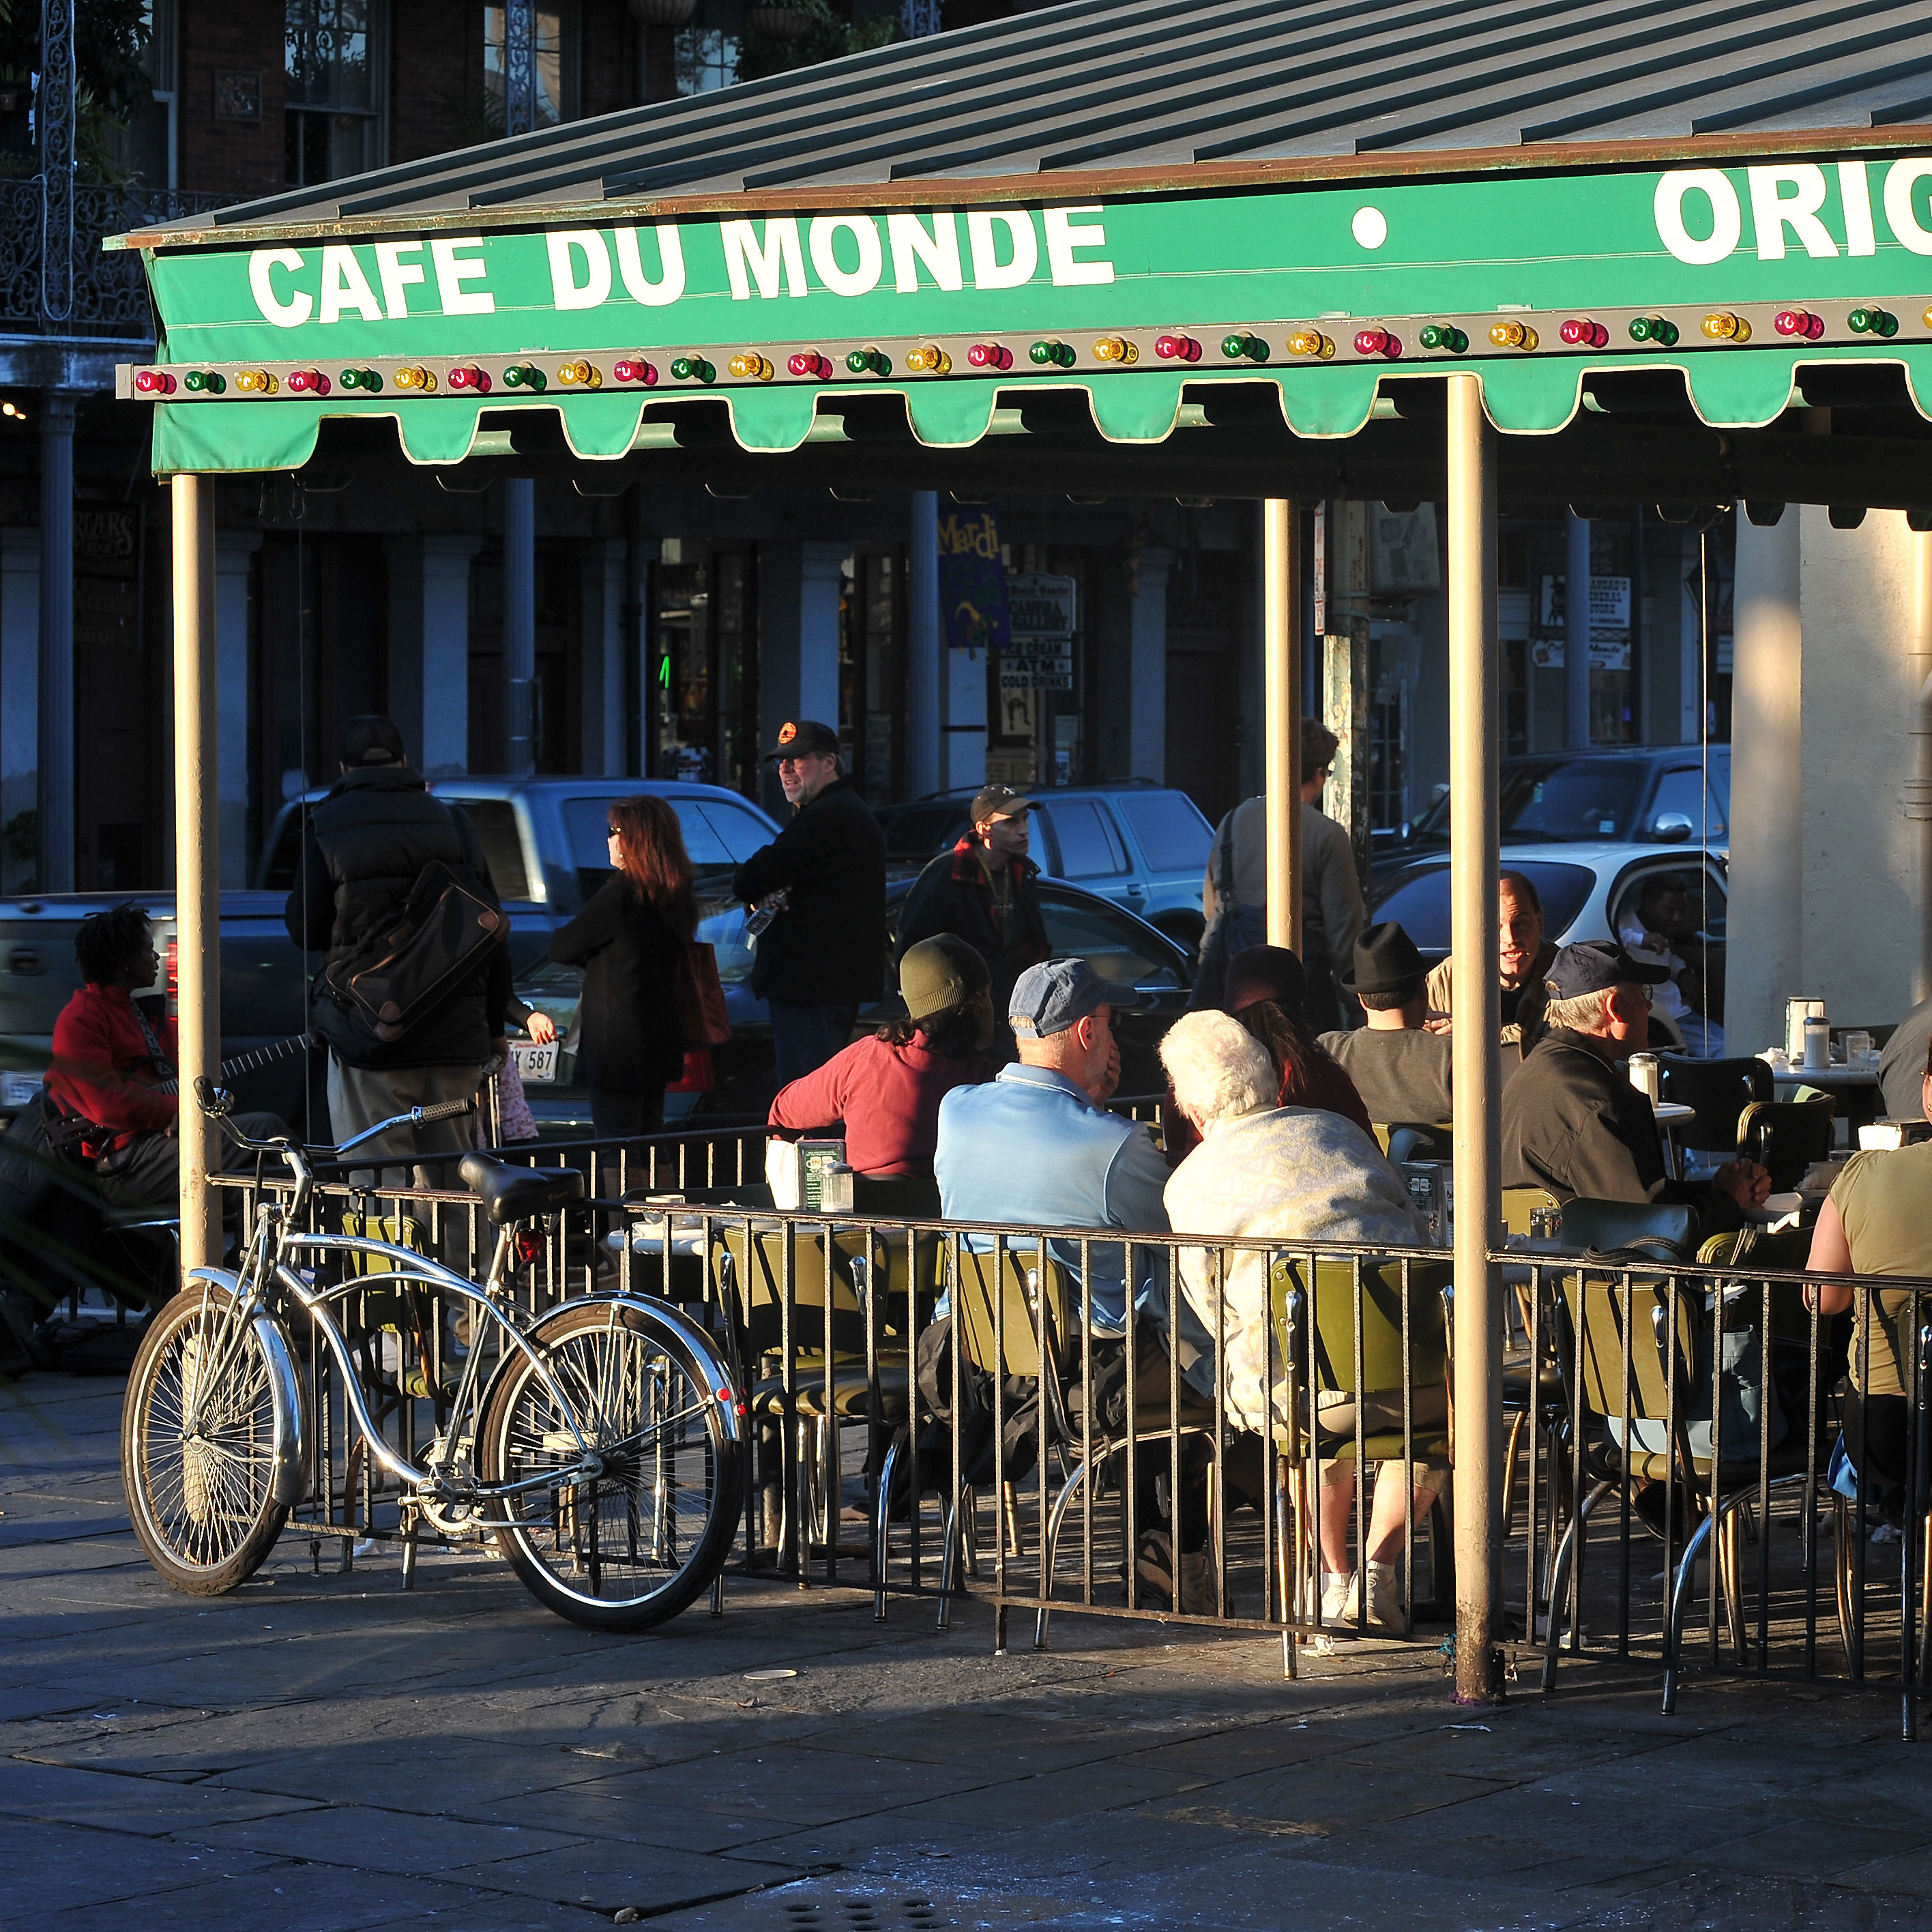 Cafe du monde   photo by pat garin pbwzsn